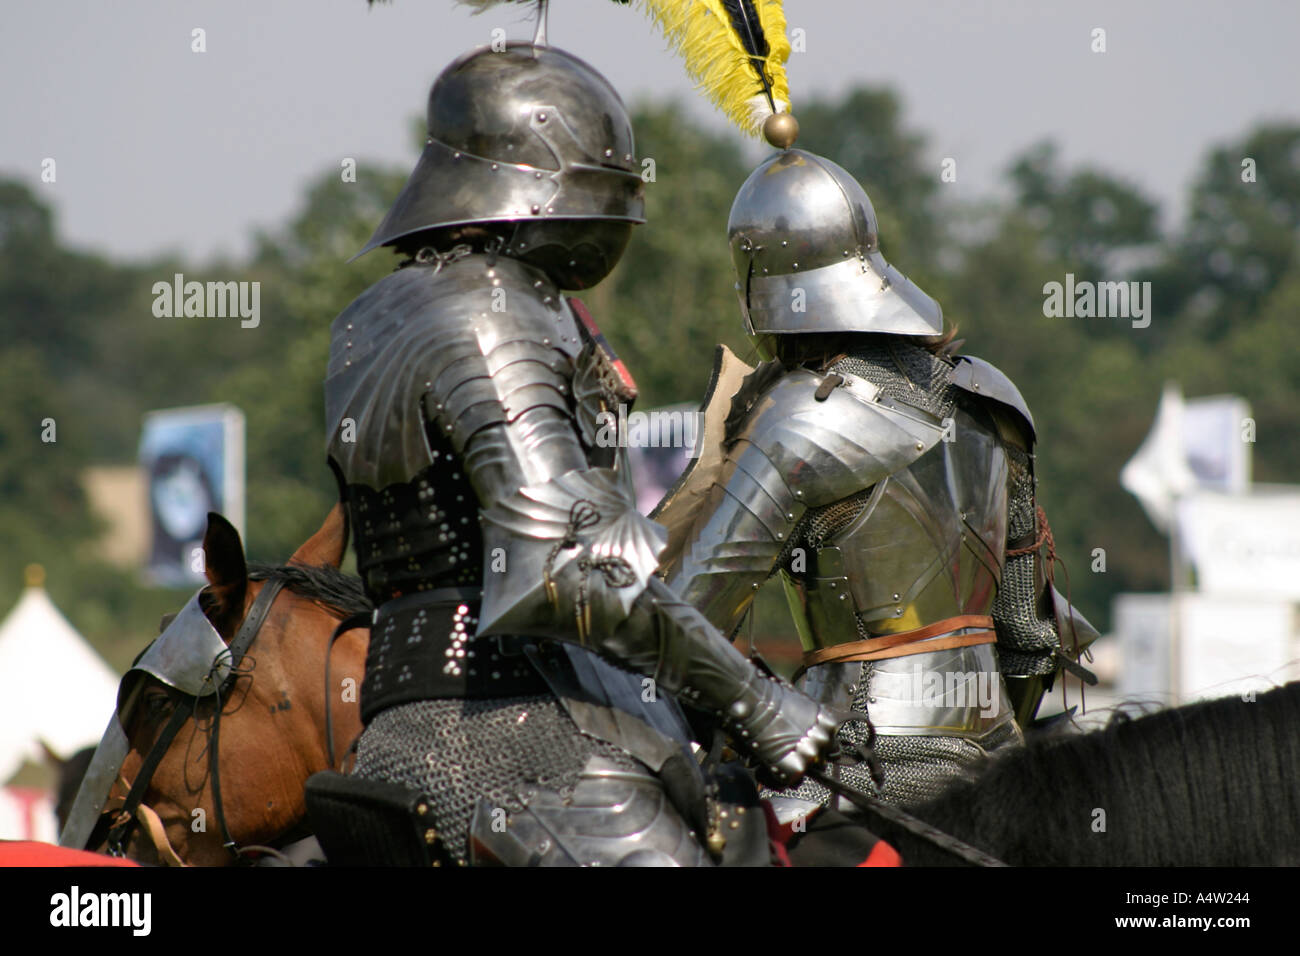 The Black Knight Medieval Jousting Display - Stock Image